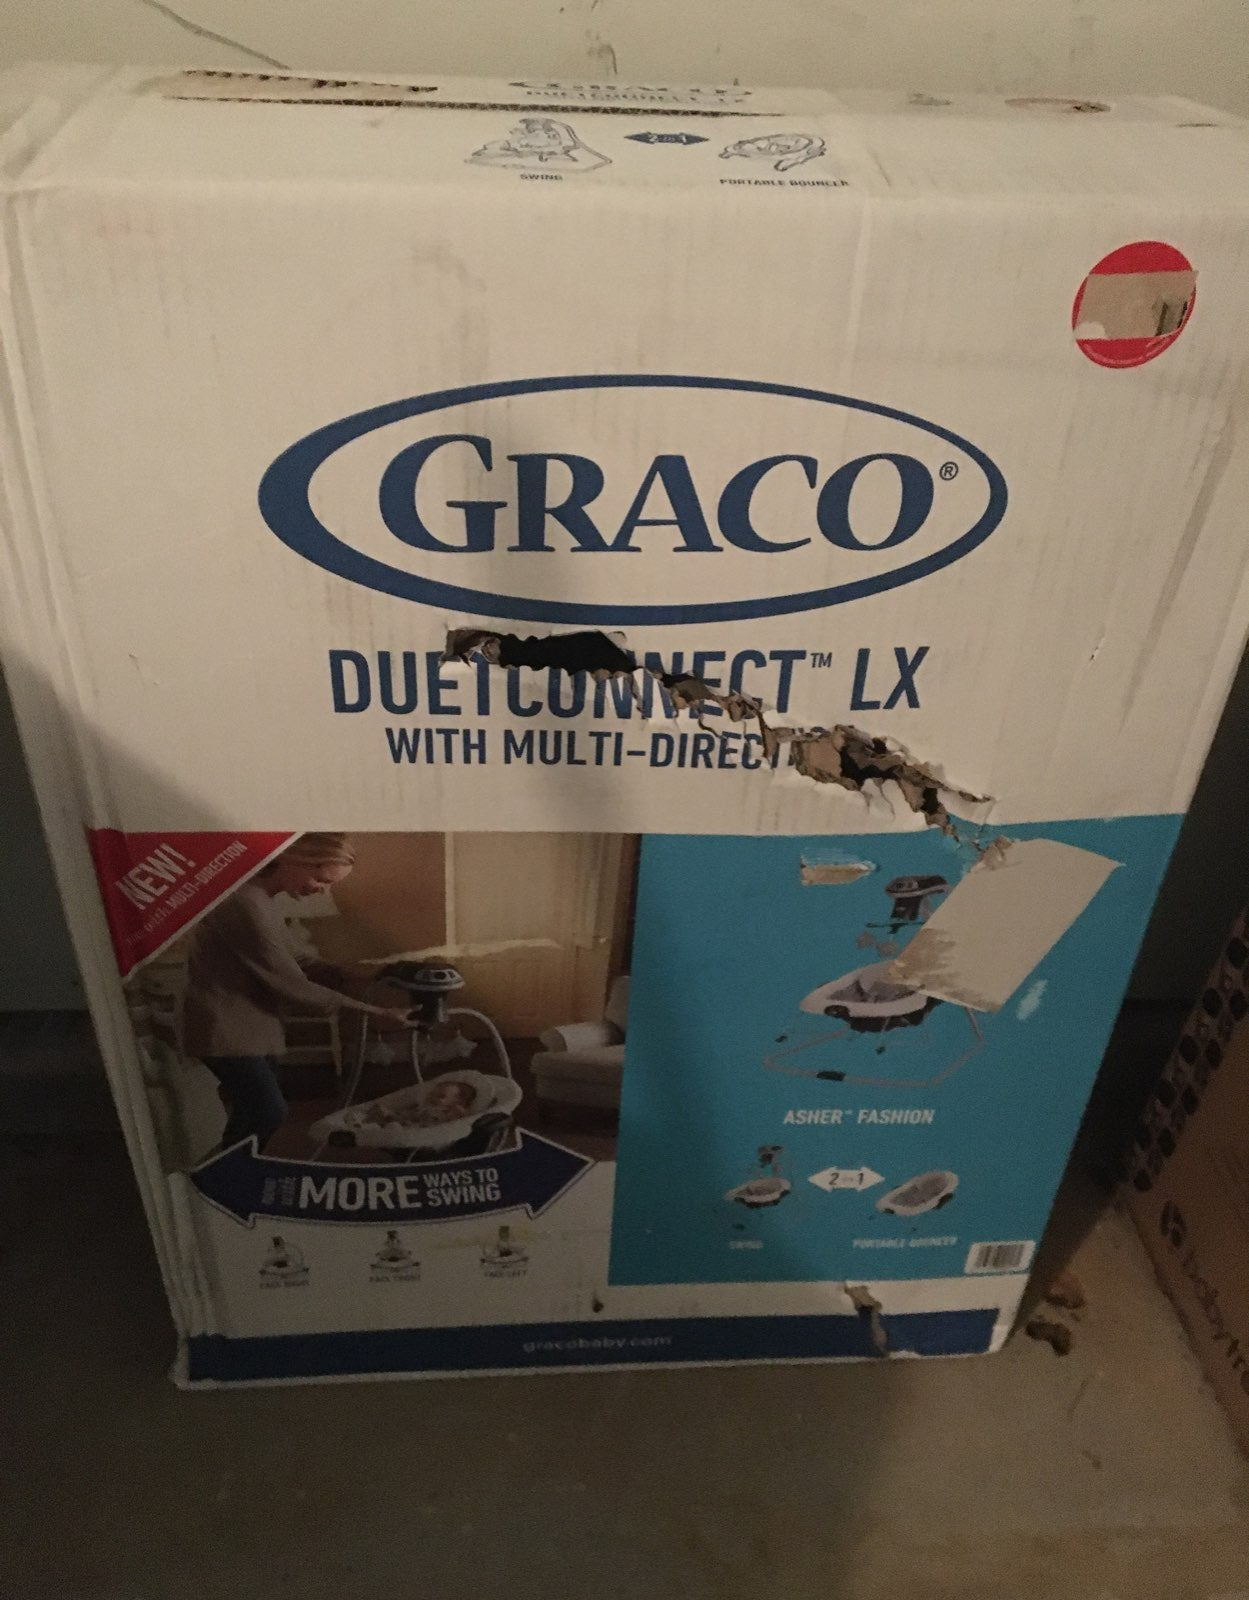 Graco duet connect lx with multi directi